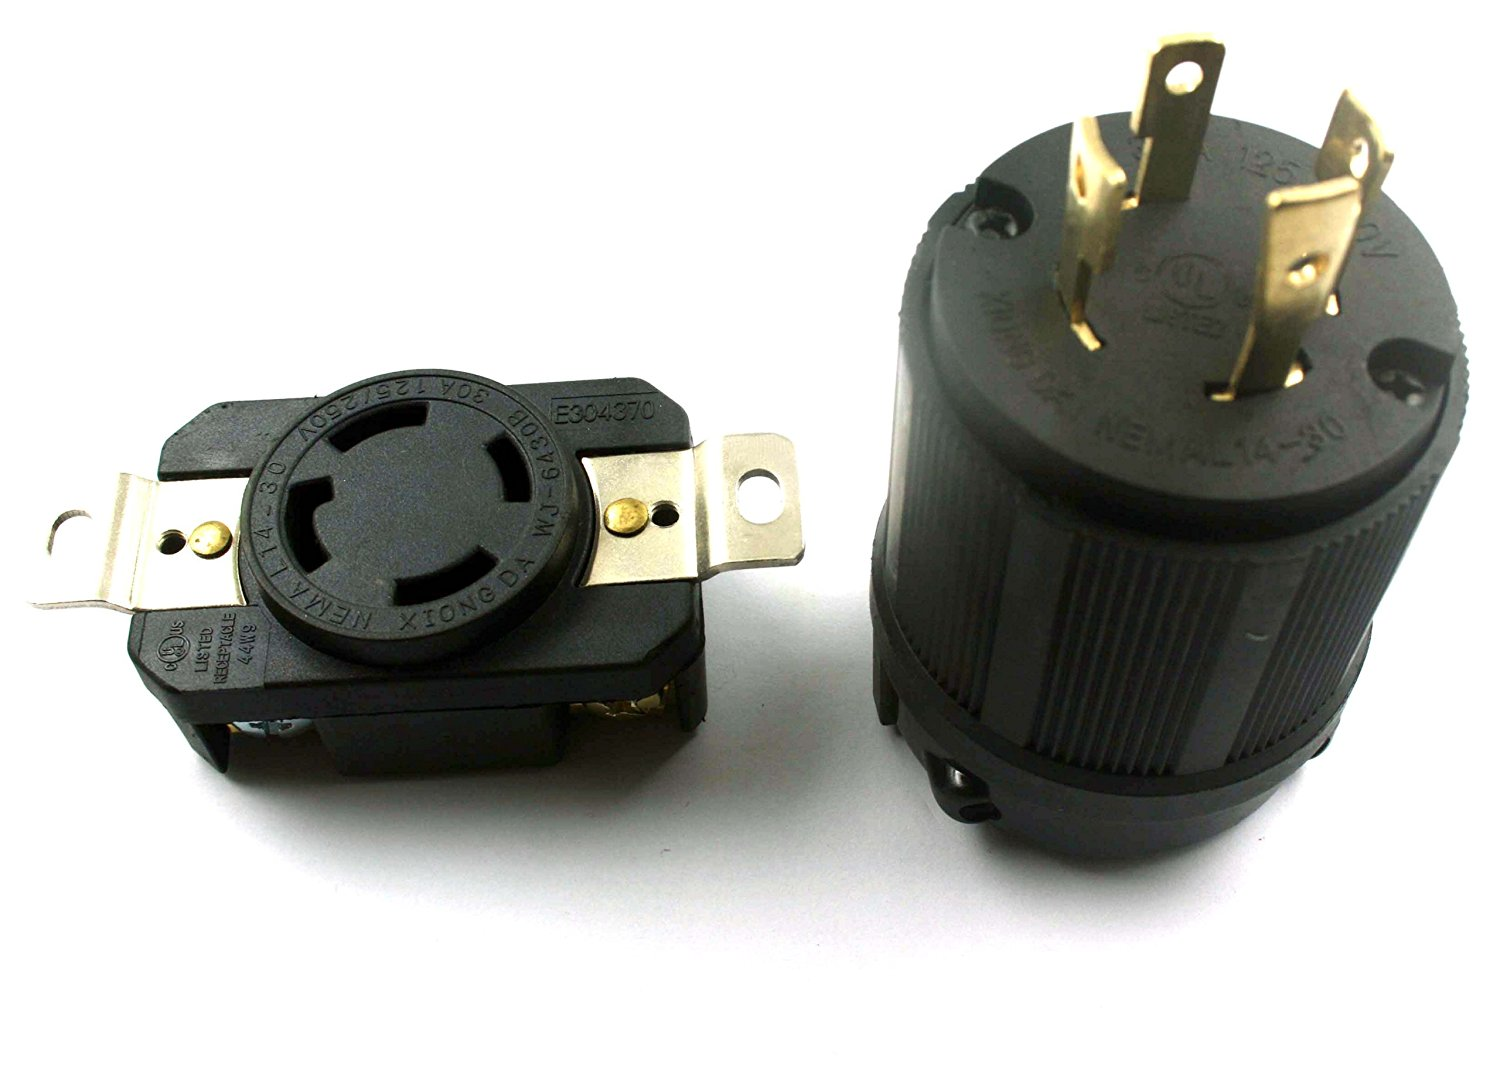 Cheap 220 Generator Plug Find Deals On Line At Wiring A L1430 Get Quotations Xtremeamazing Rv Ac Socket L14 30 Amp 120v 220v Male